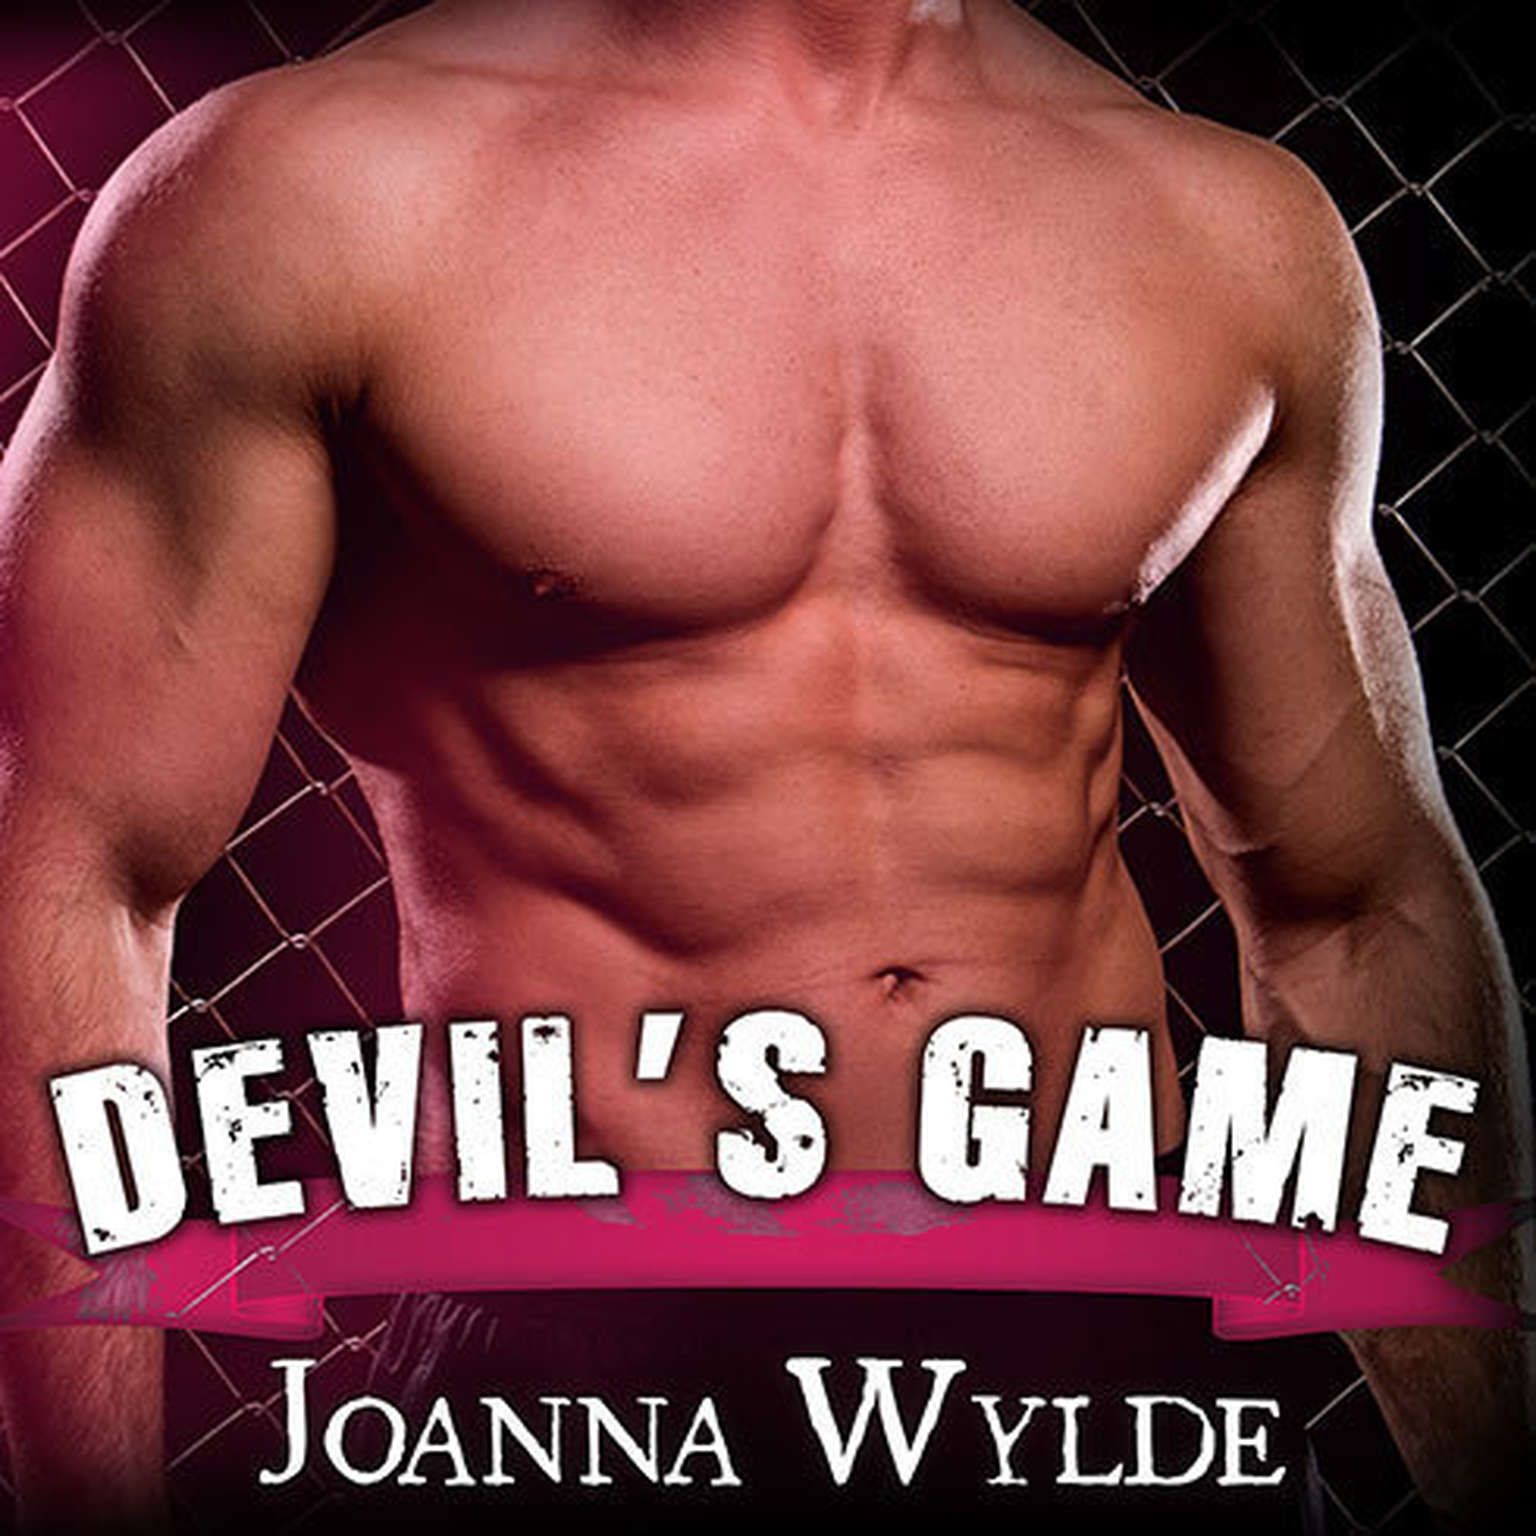 Printable Devil's Game Audiobook Cover Art